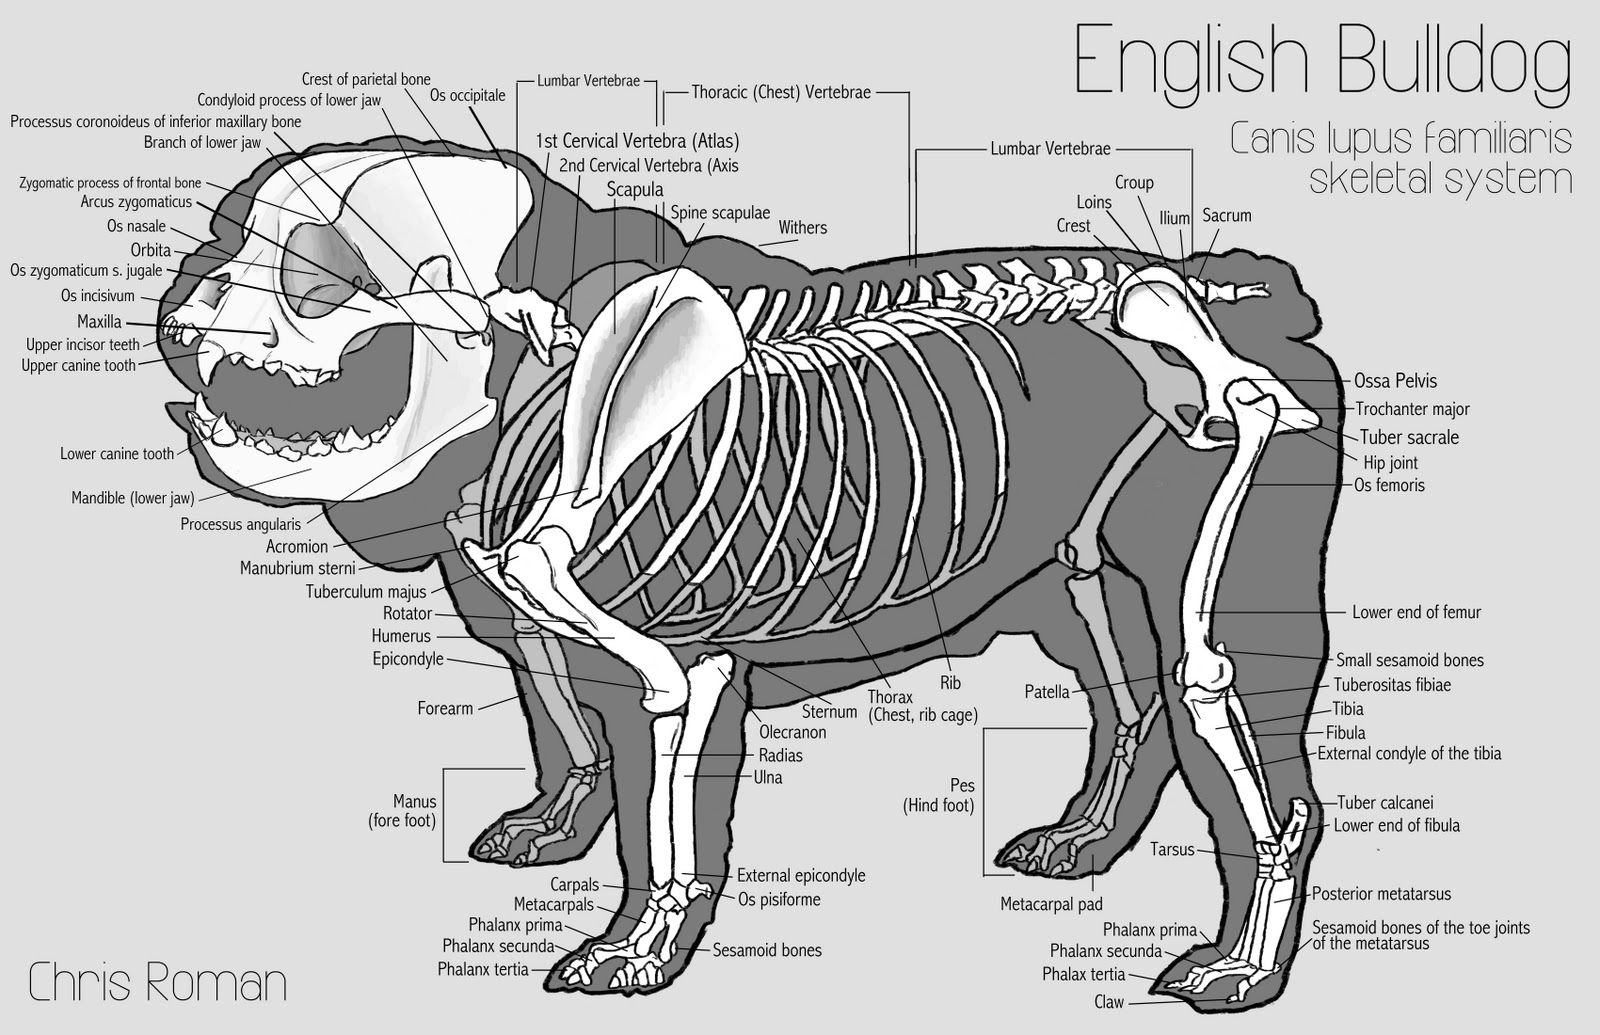 Dog\'s Skeleton View | An English bulldog\'s skeletal and superficial ...